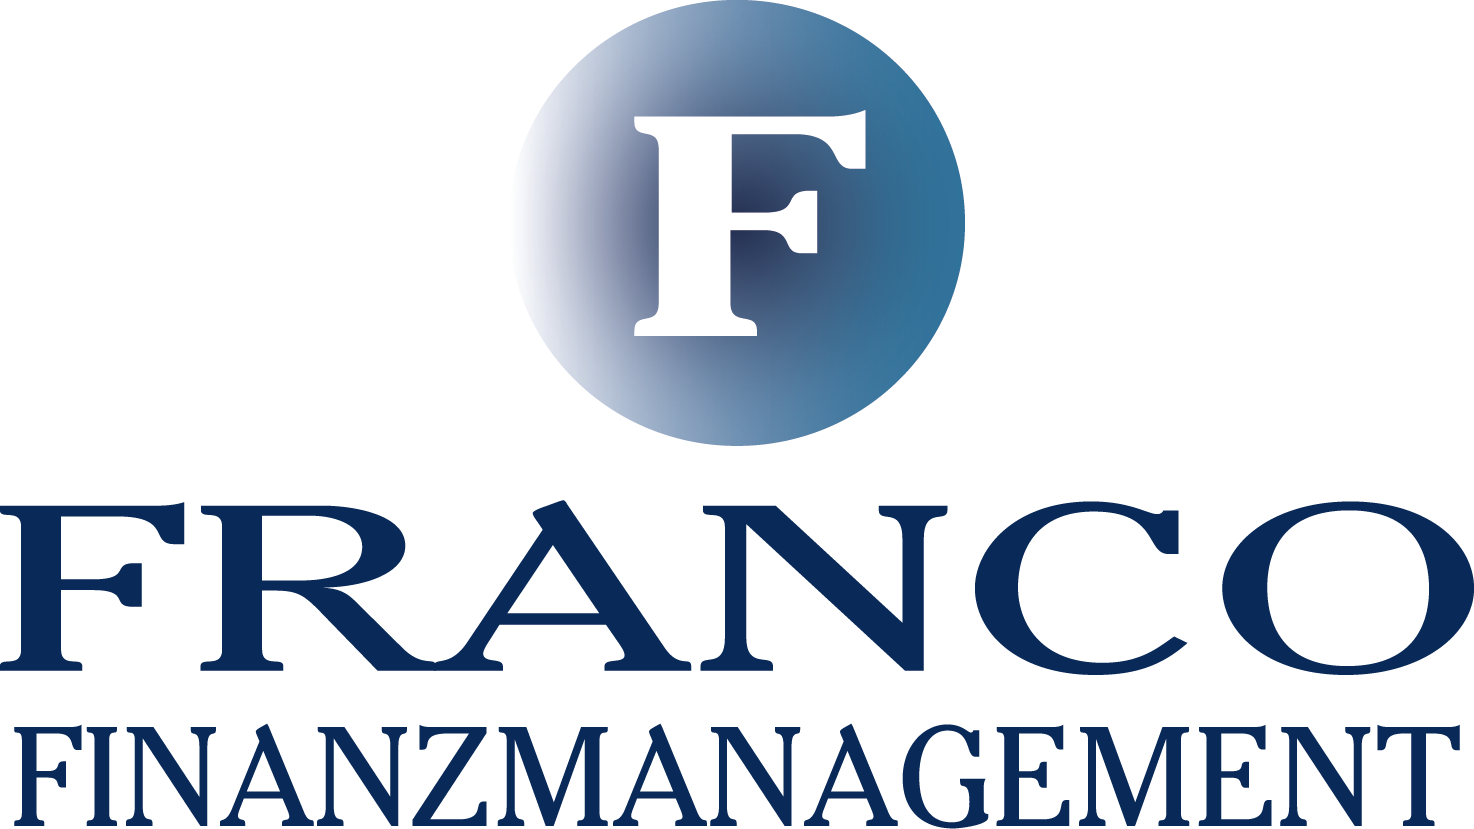 Franco Finanzmanagement